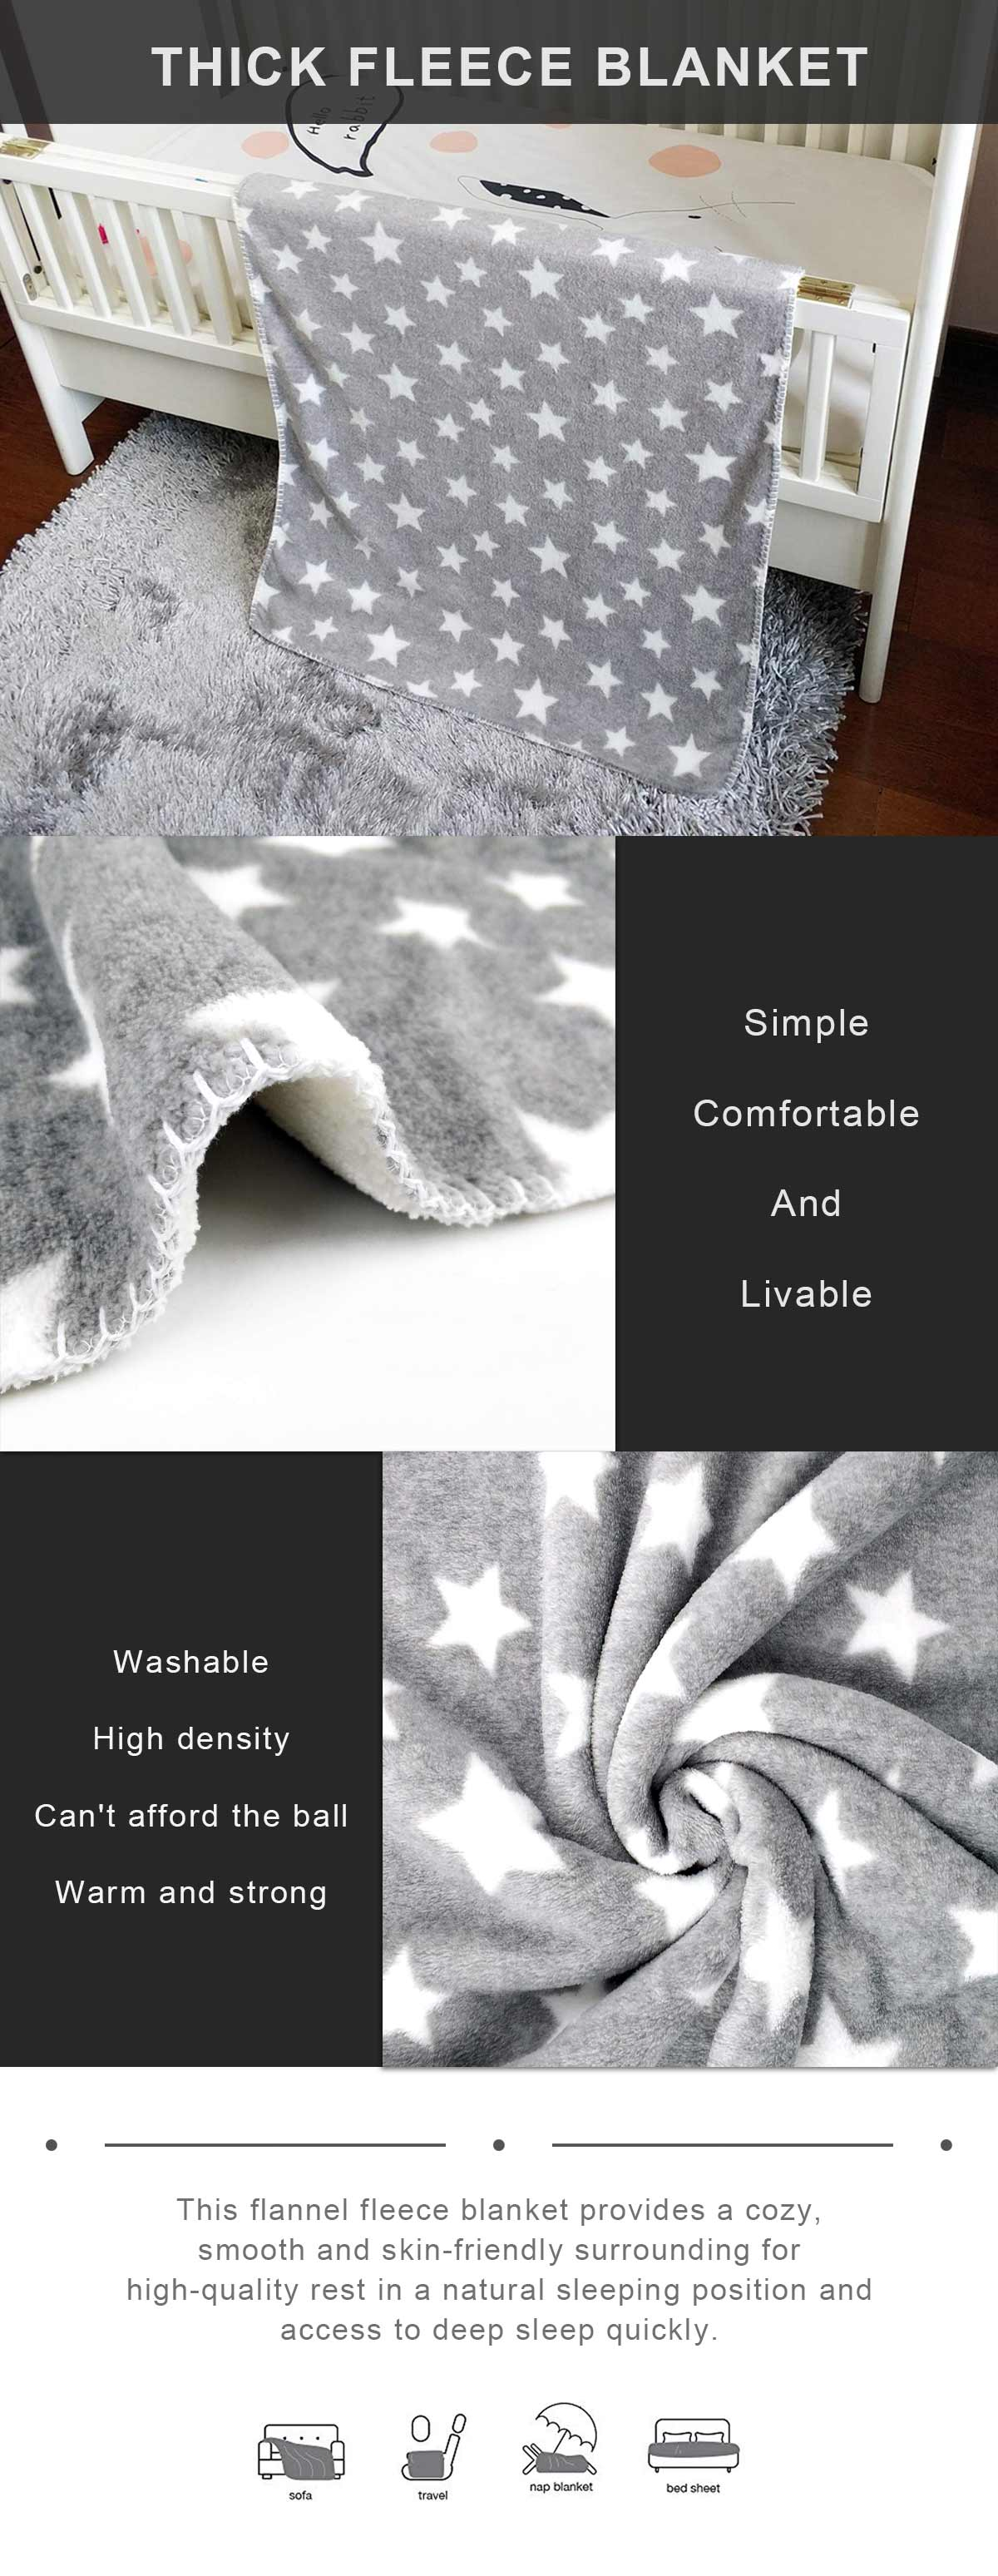 Thick Fleece Blanket